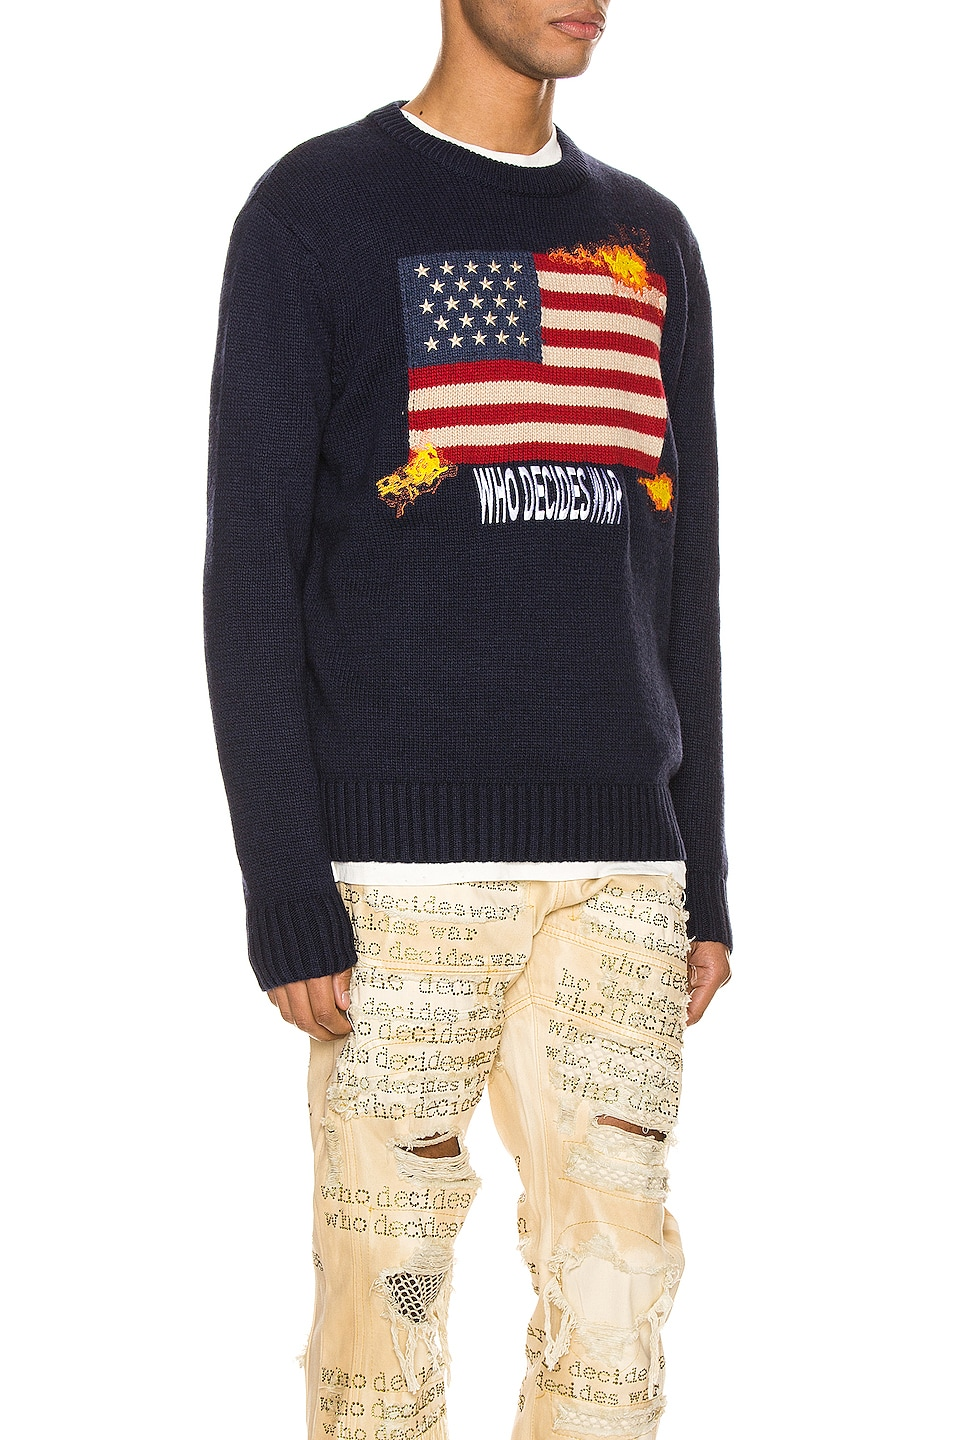 Image 2 of Who Decides War by Ev Bravado Who Decides War Knit Pullover in Navy